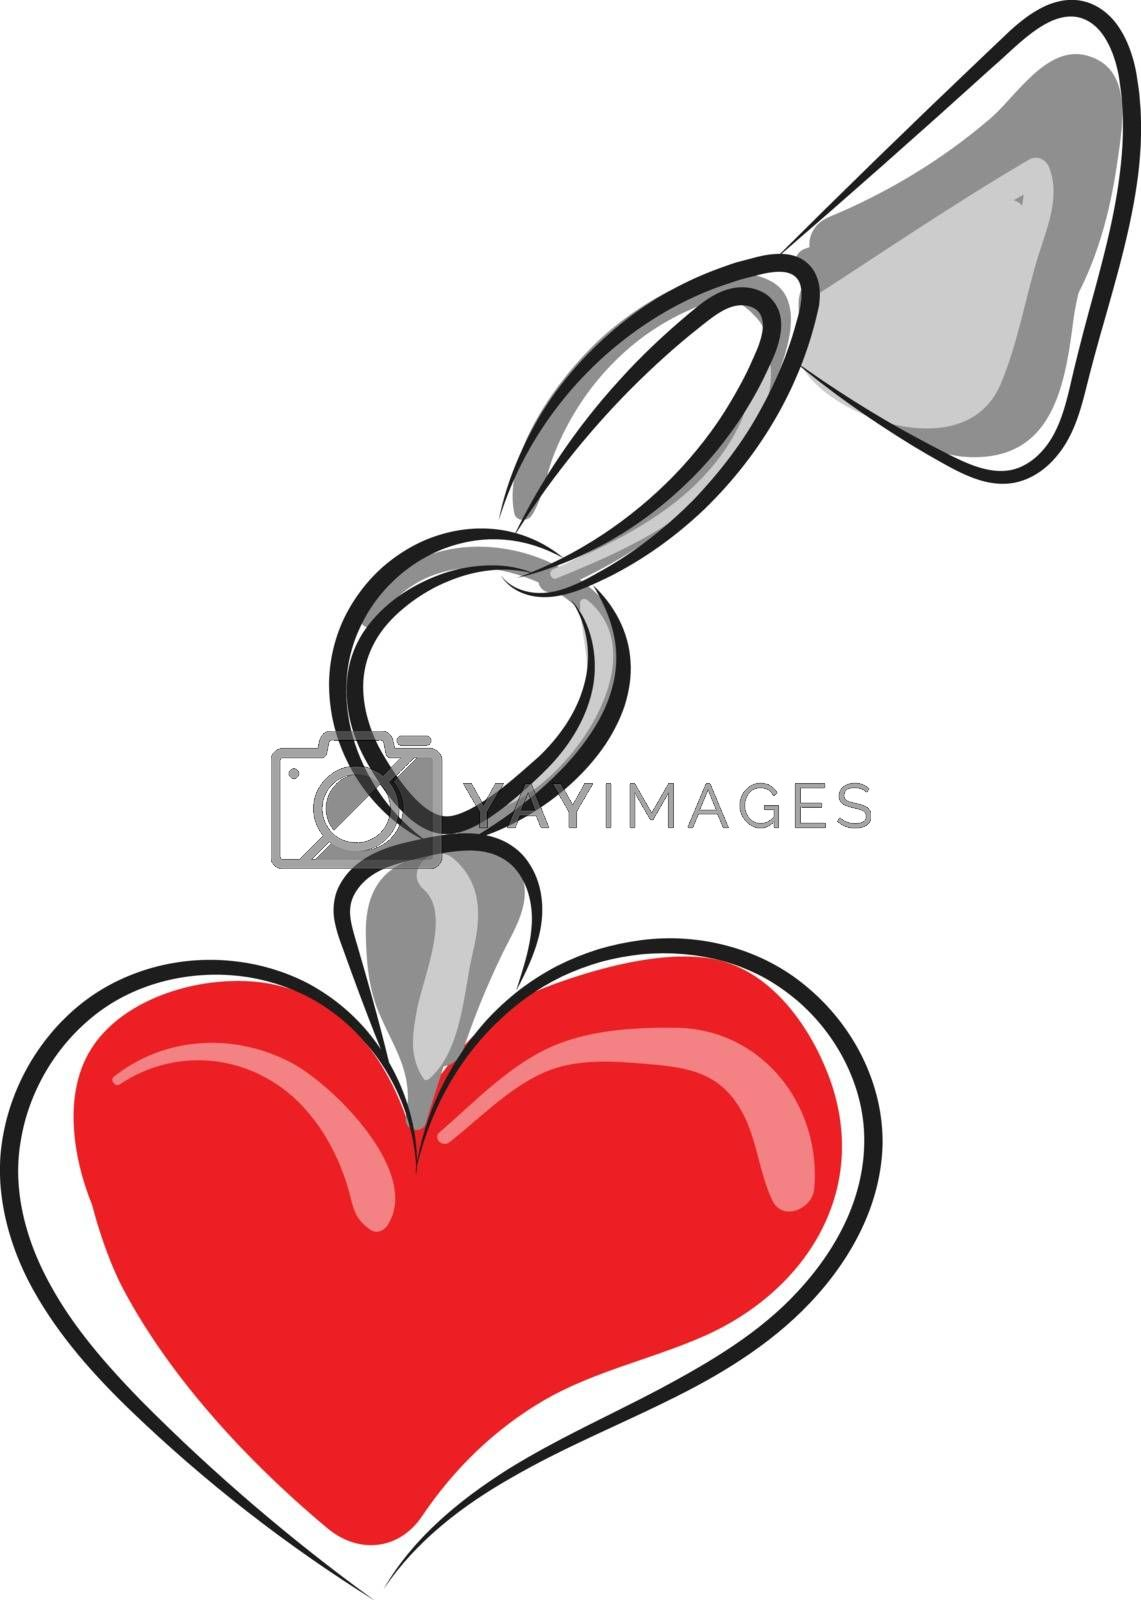 Royalty free image of Cartoon red-heart keychain vector or color illustration by Morphart